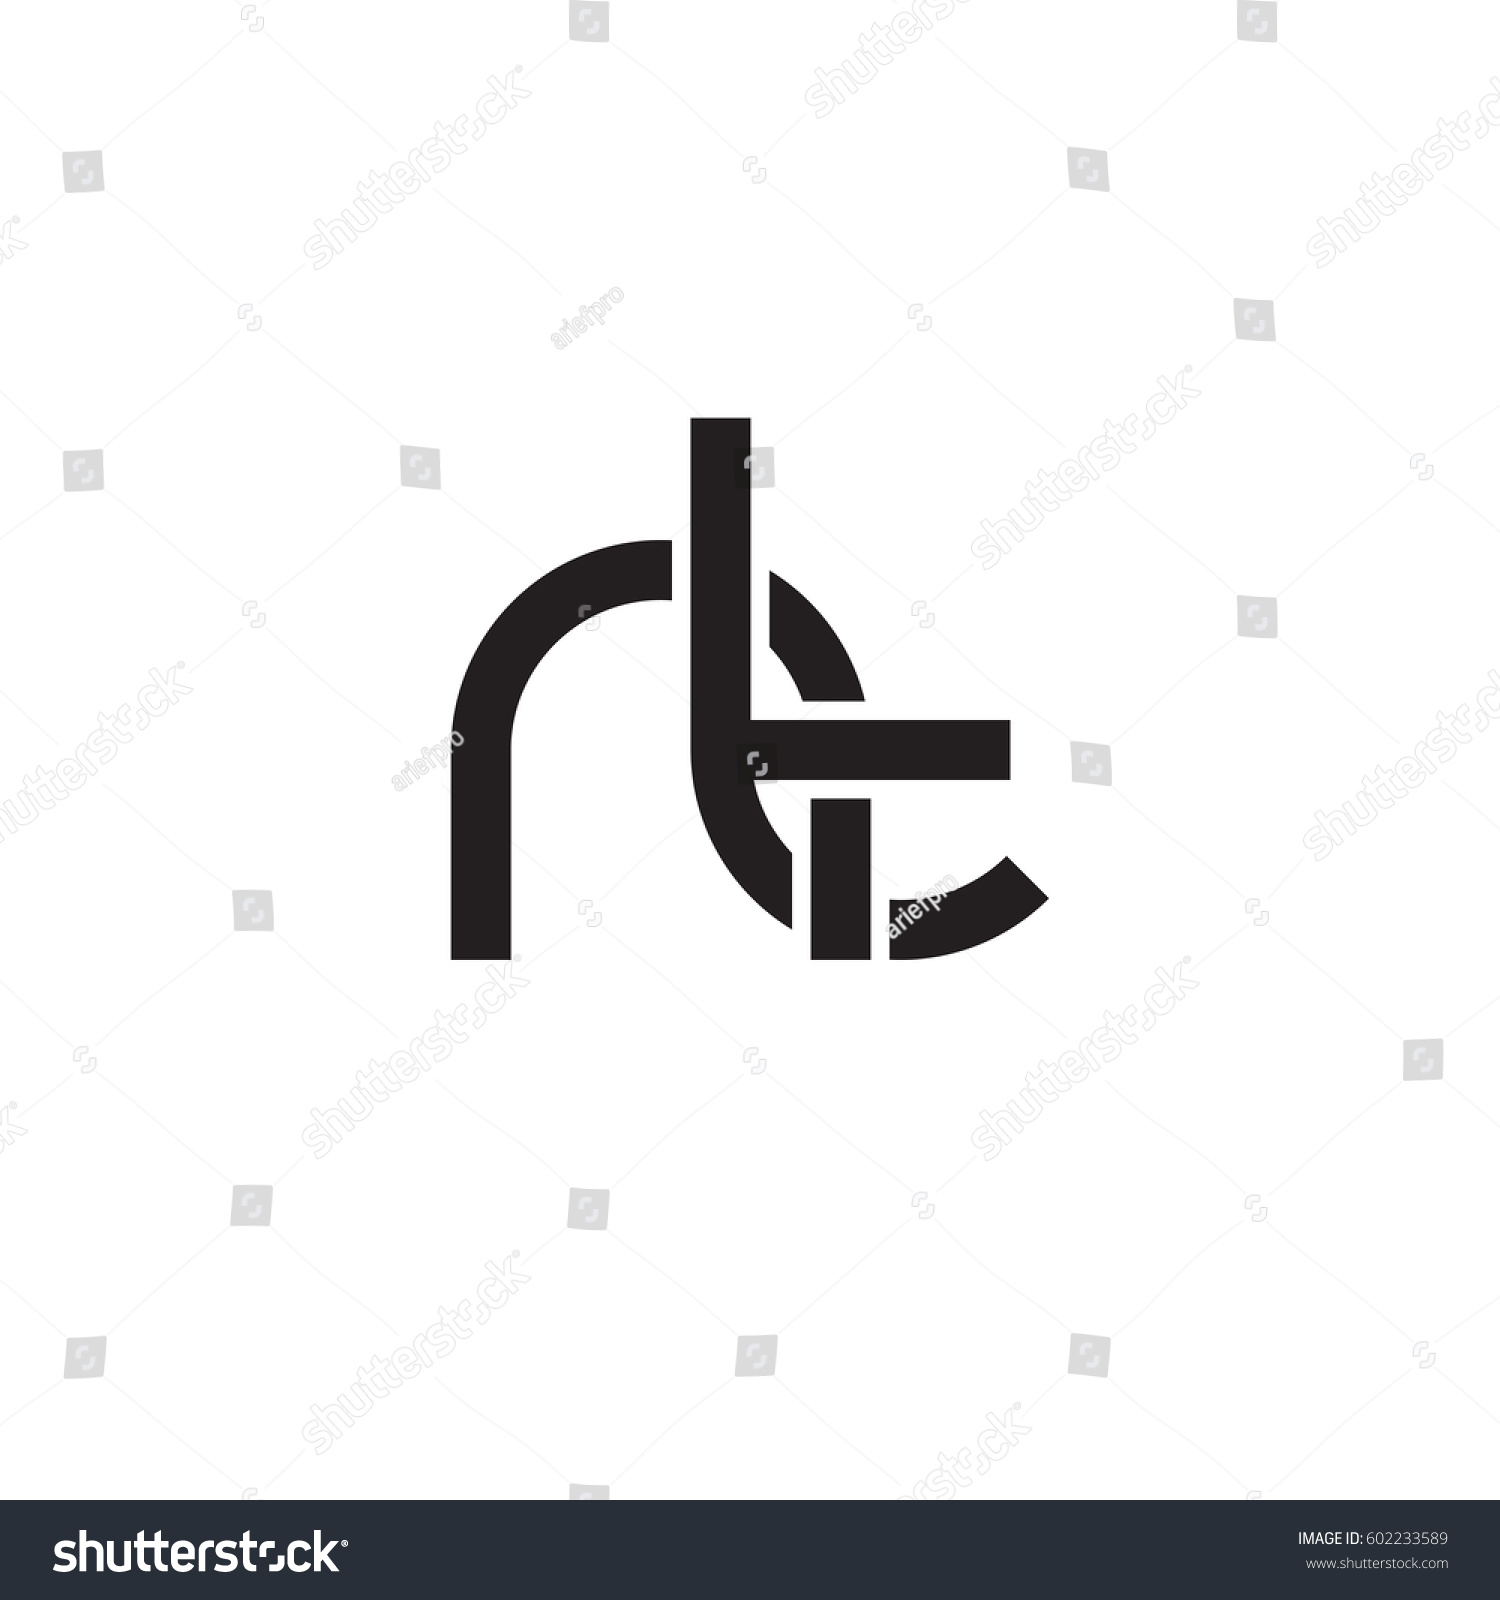 Initial Letters Nt Round Overlapping Chain Stock Vector Royalty